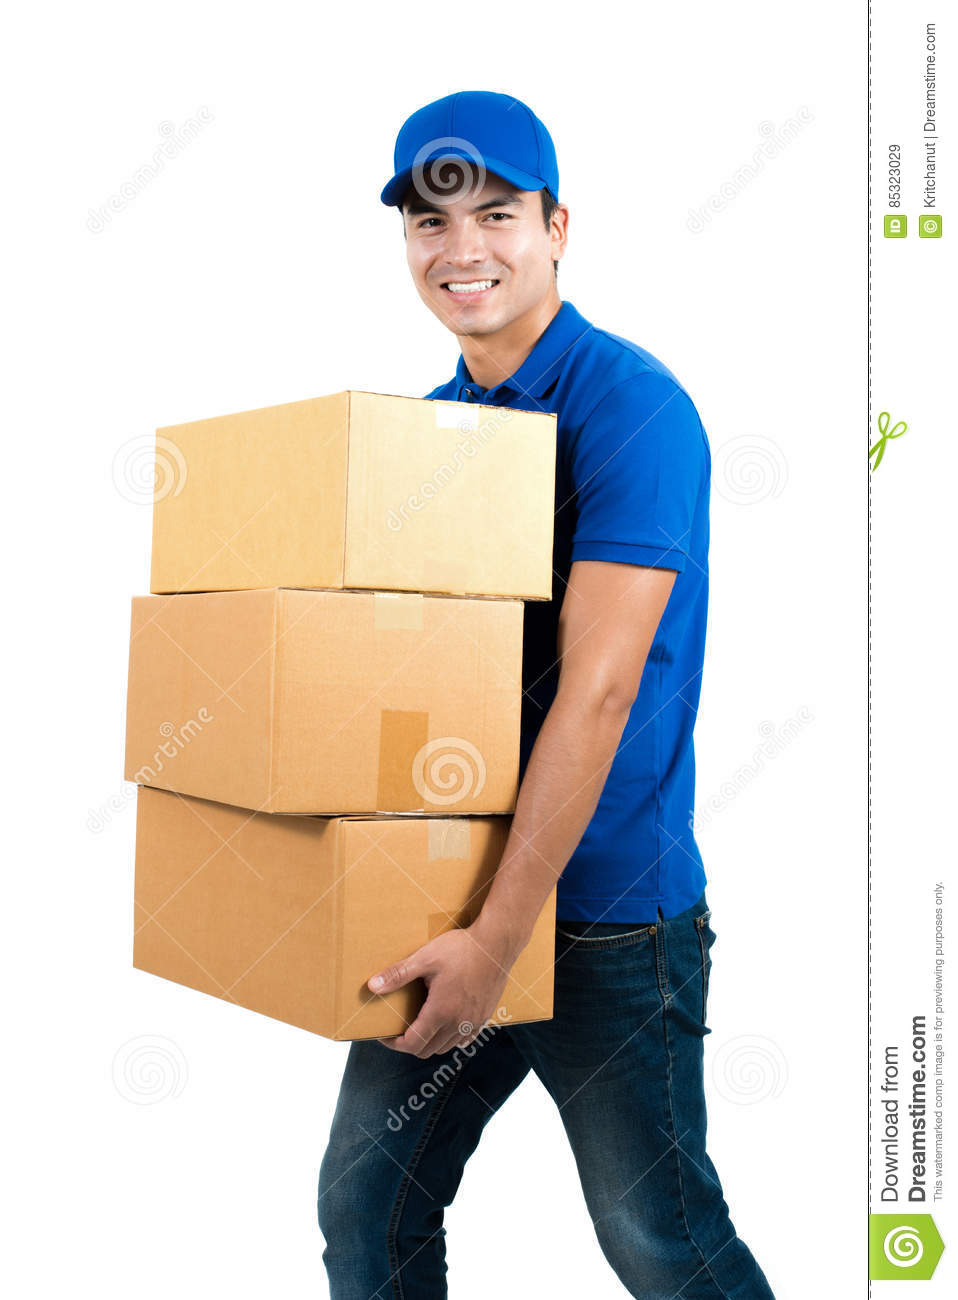 Smiling delivery man holding boxes